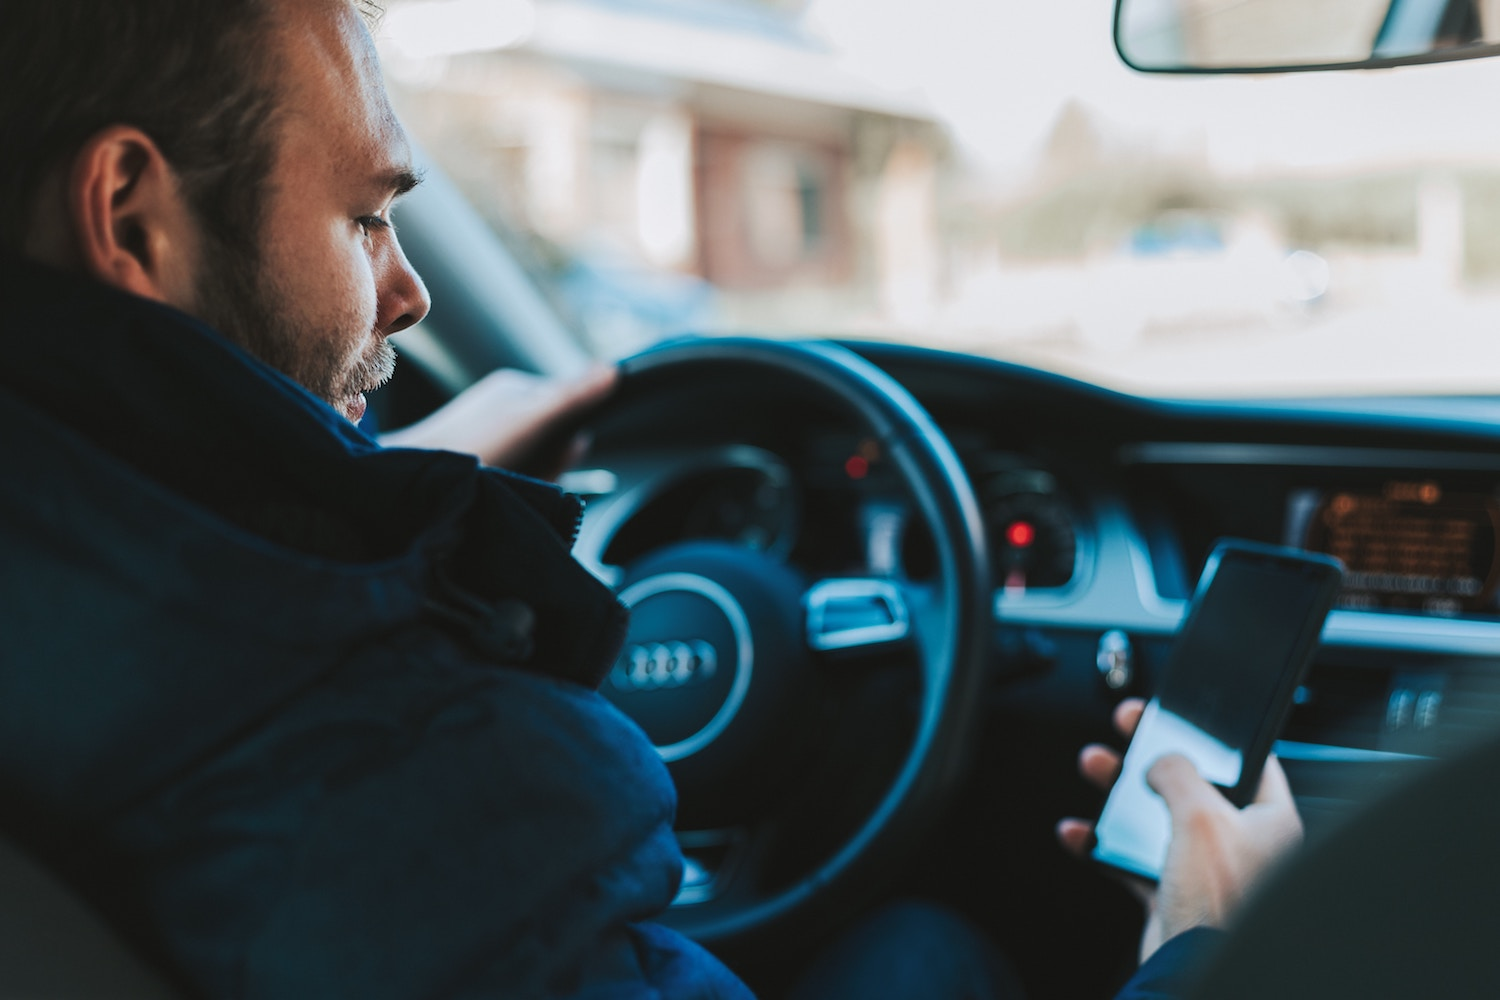 Person using smartphone in car